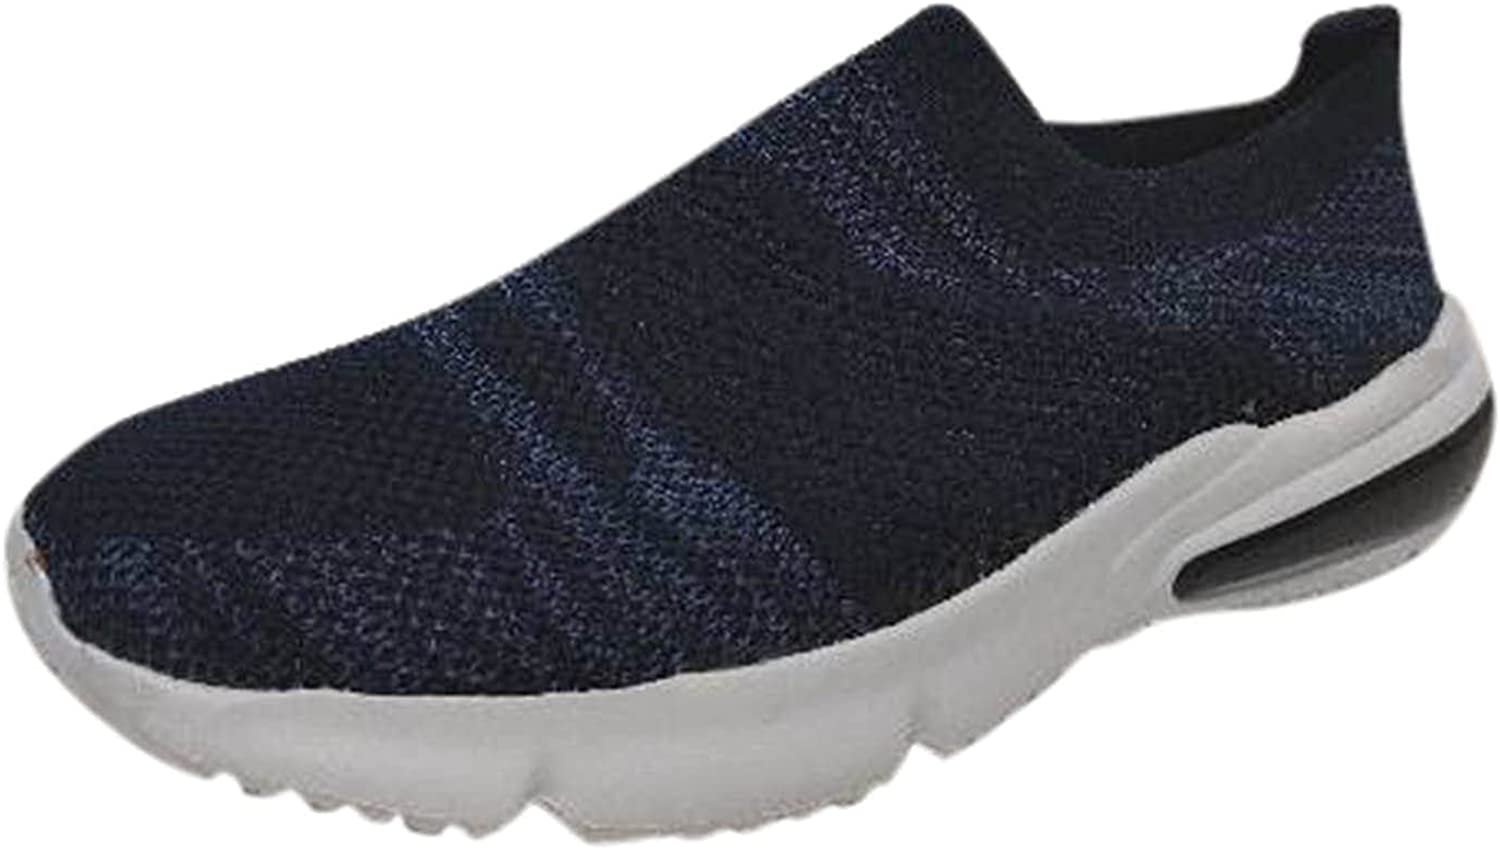 FAMOORE Women's Mules & Clogs Sneakers for Women Slip On Sneakers Comfort Breathable Mesh Running Shoes Lightweight Casual Walking Shoes